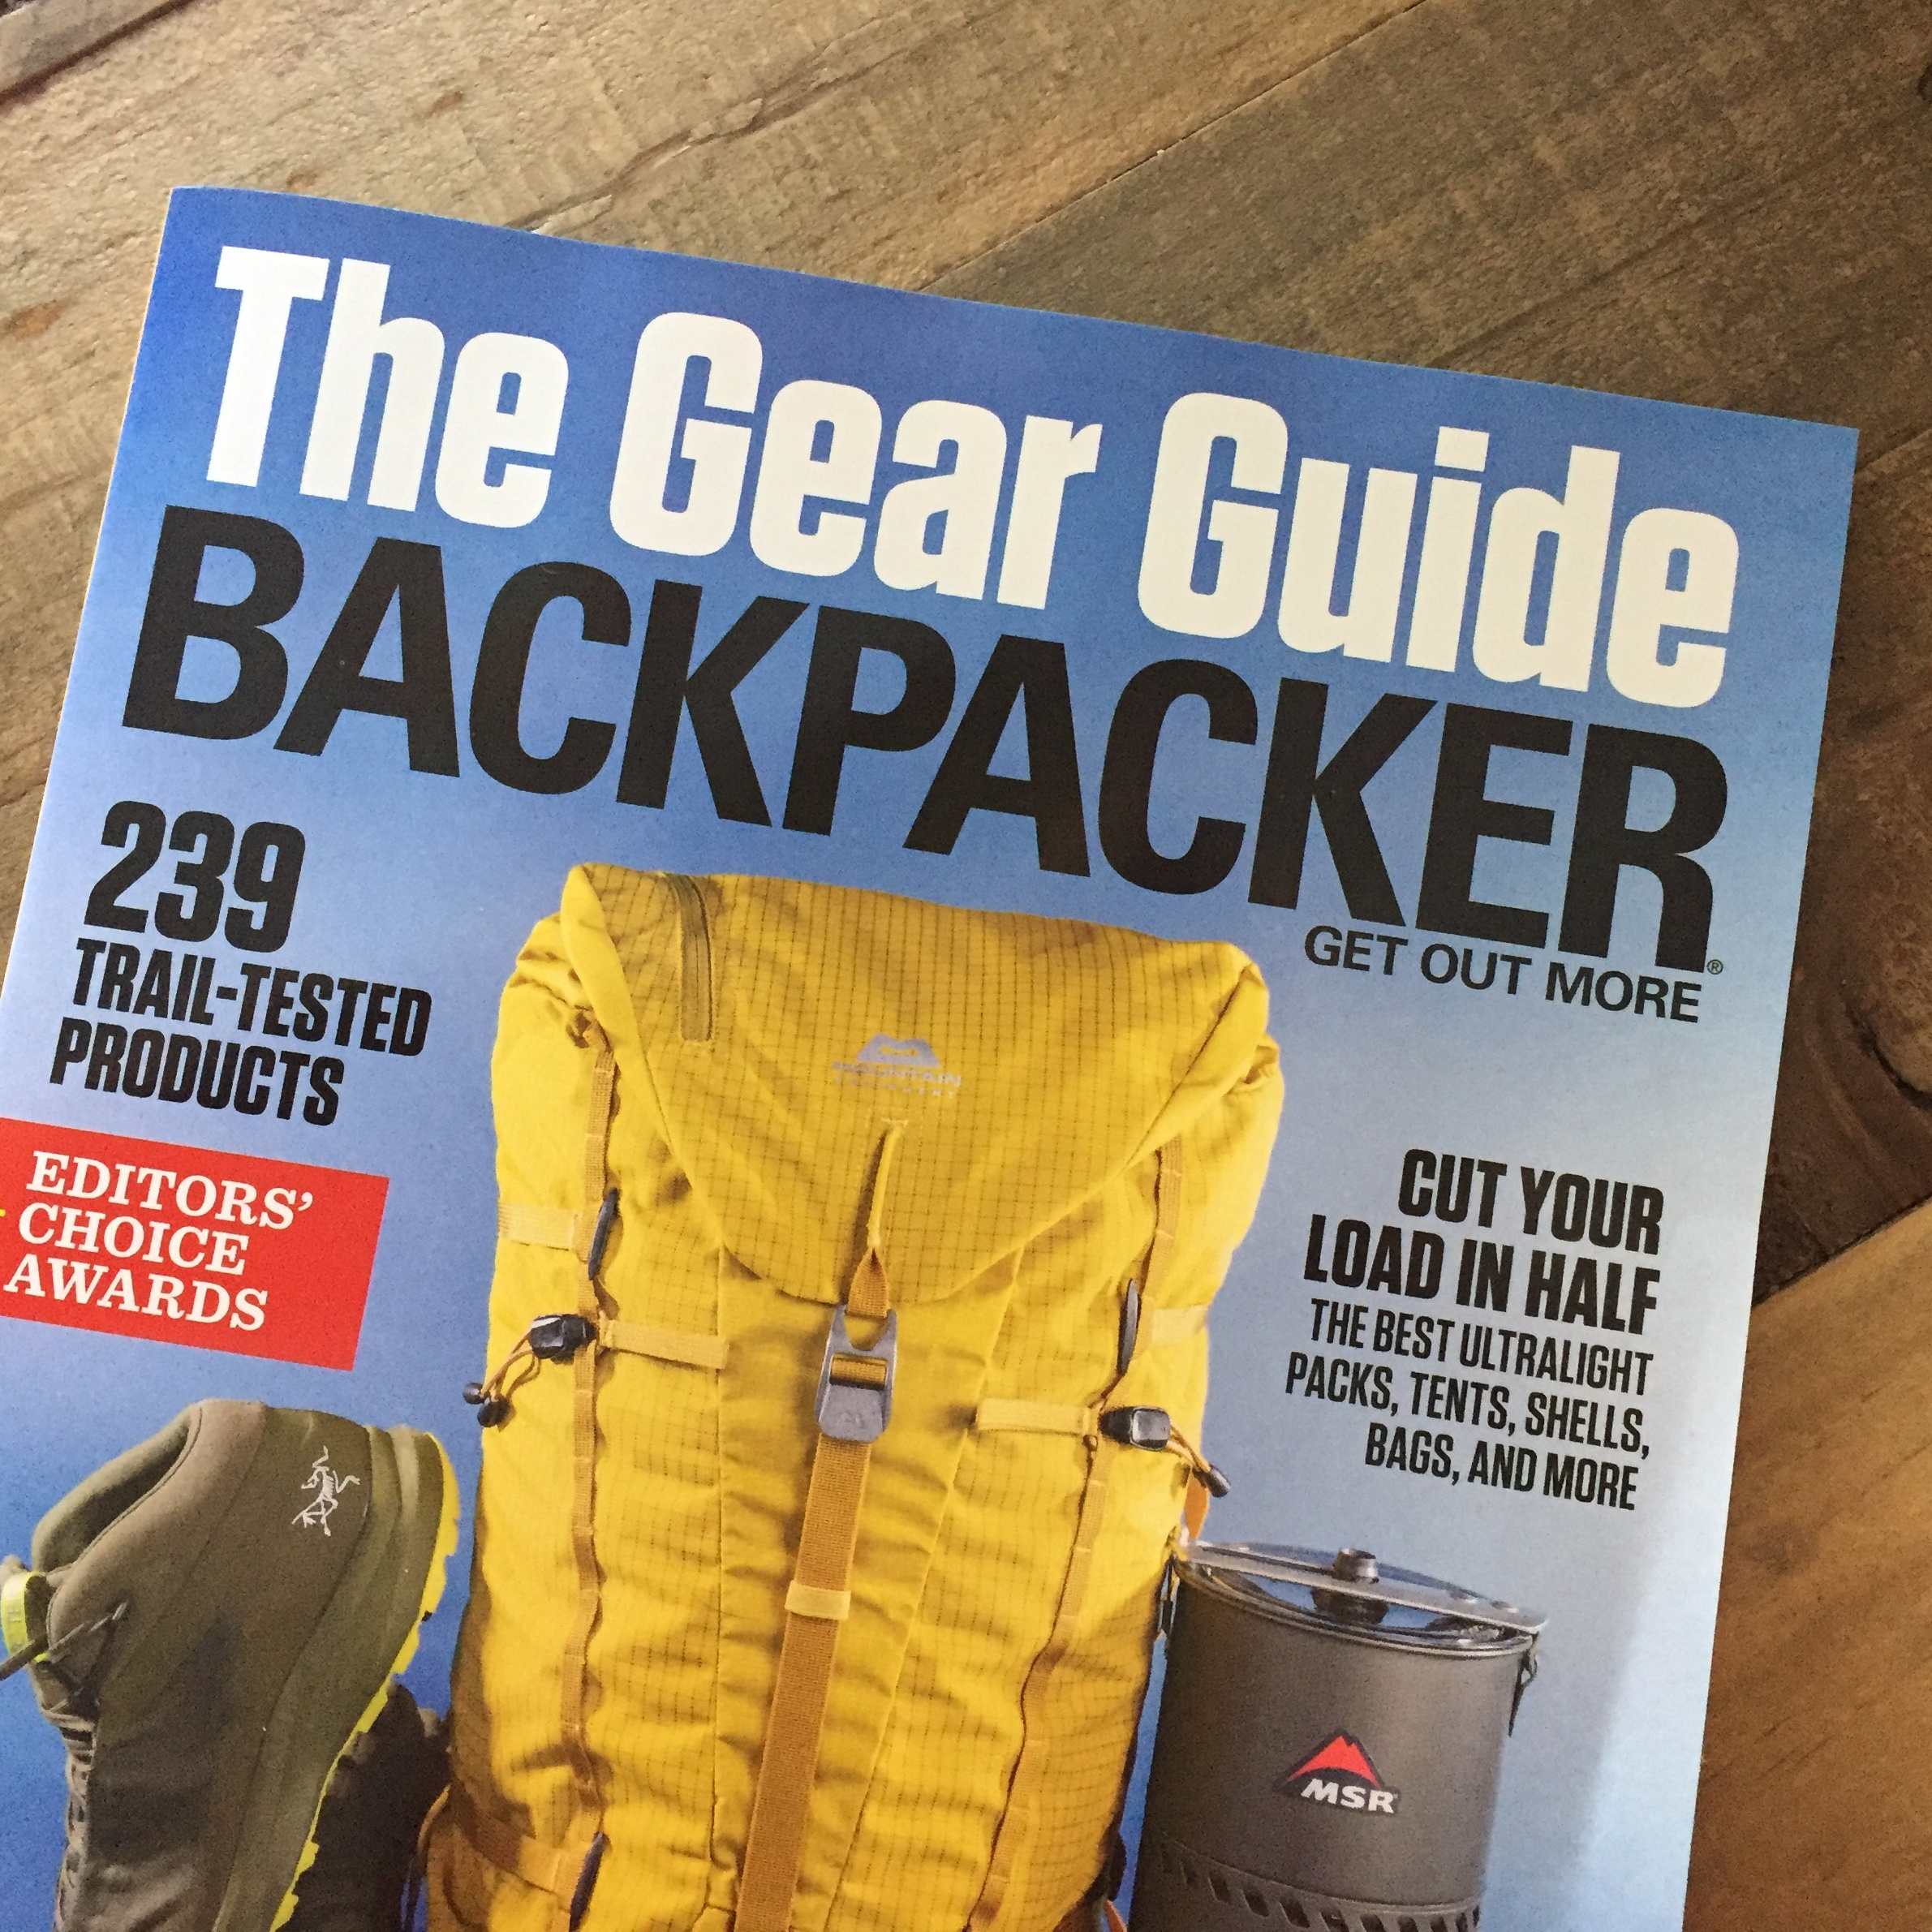 Backpacker Magazine Spring Gear Guide 2019